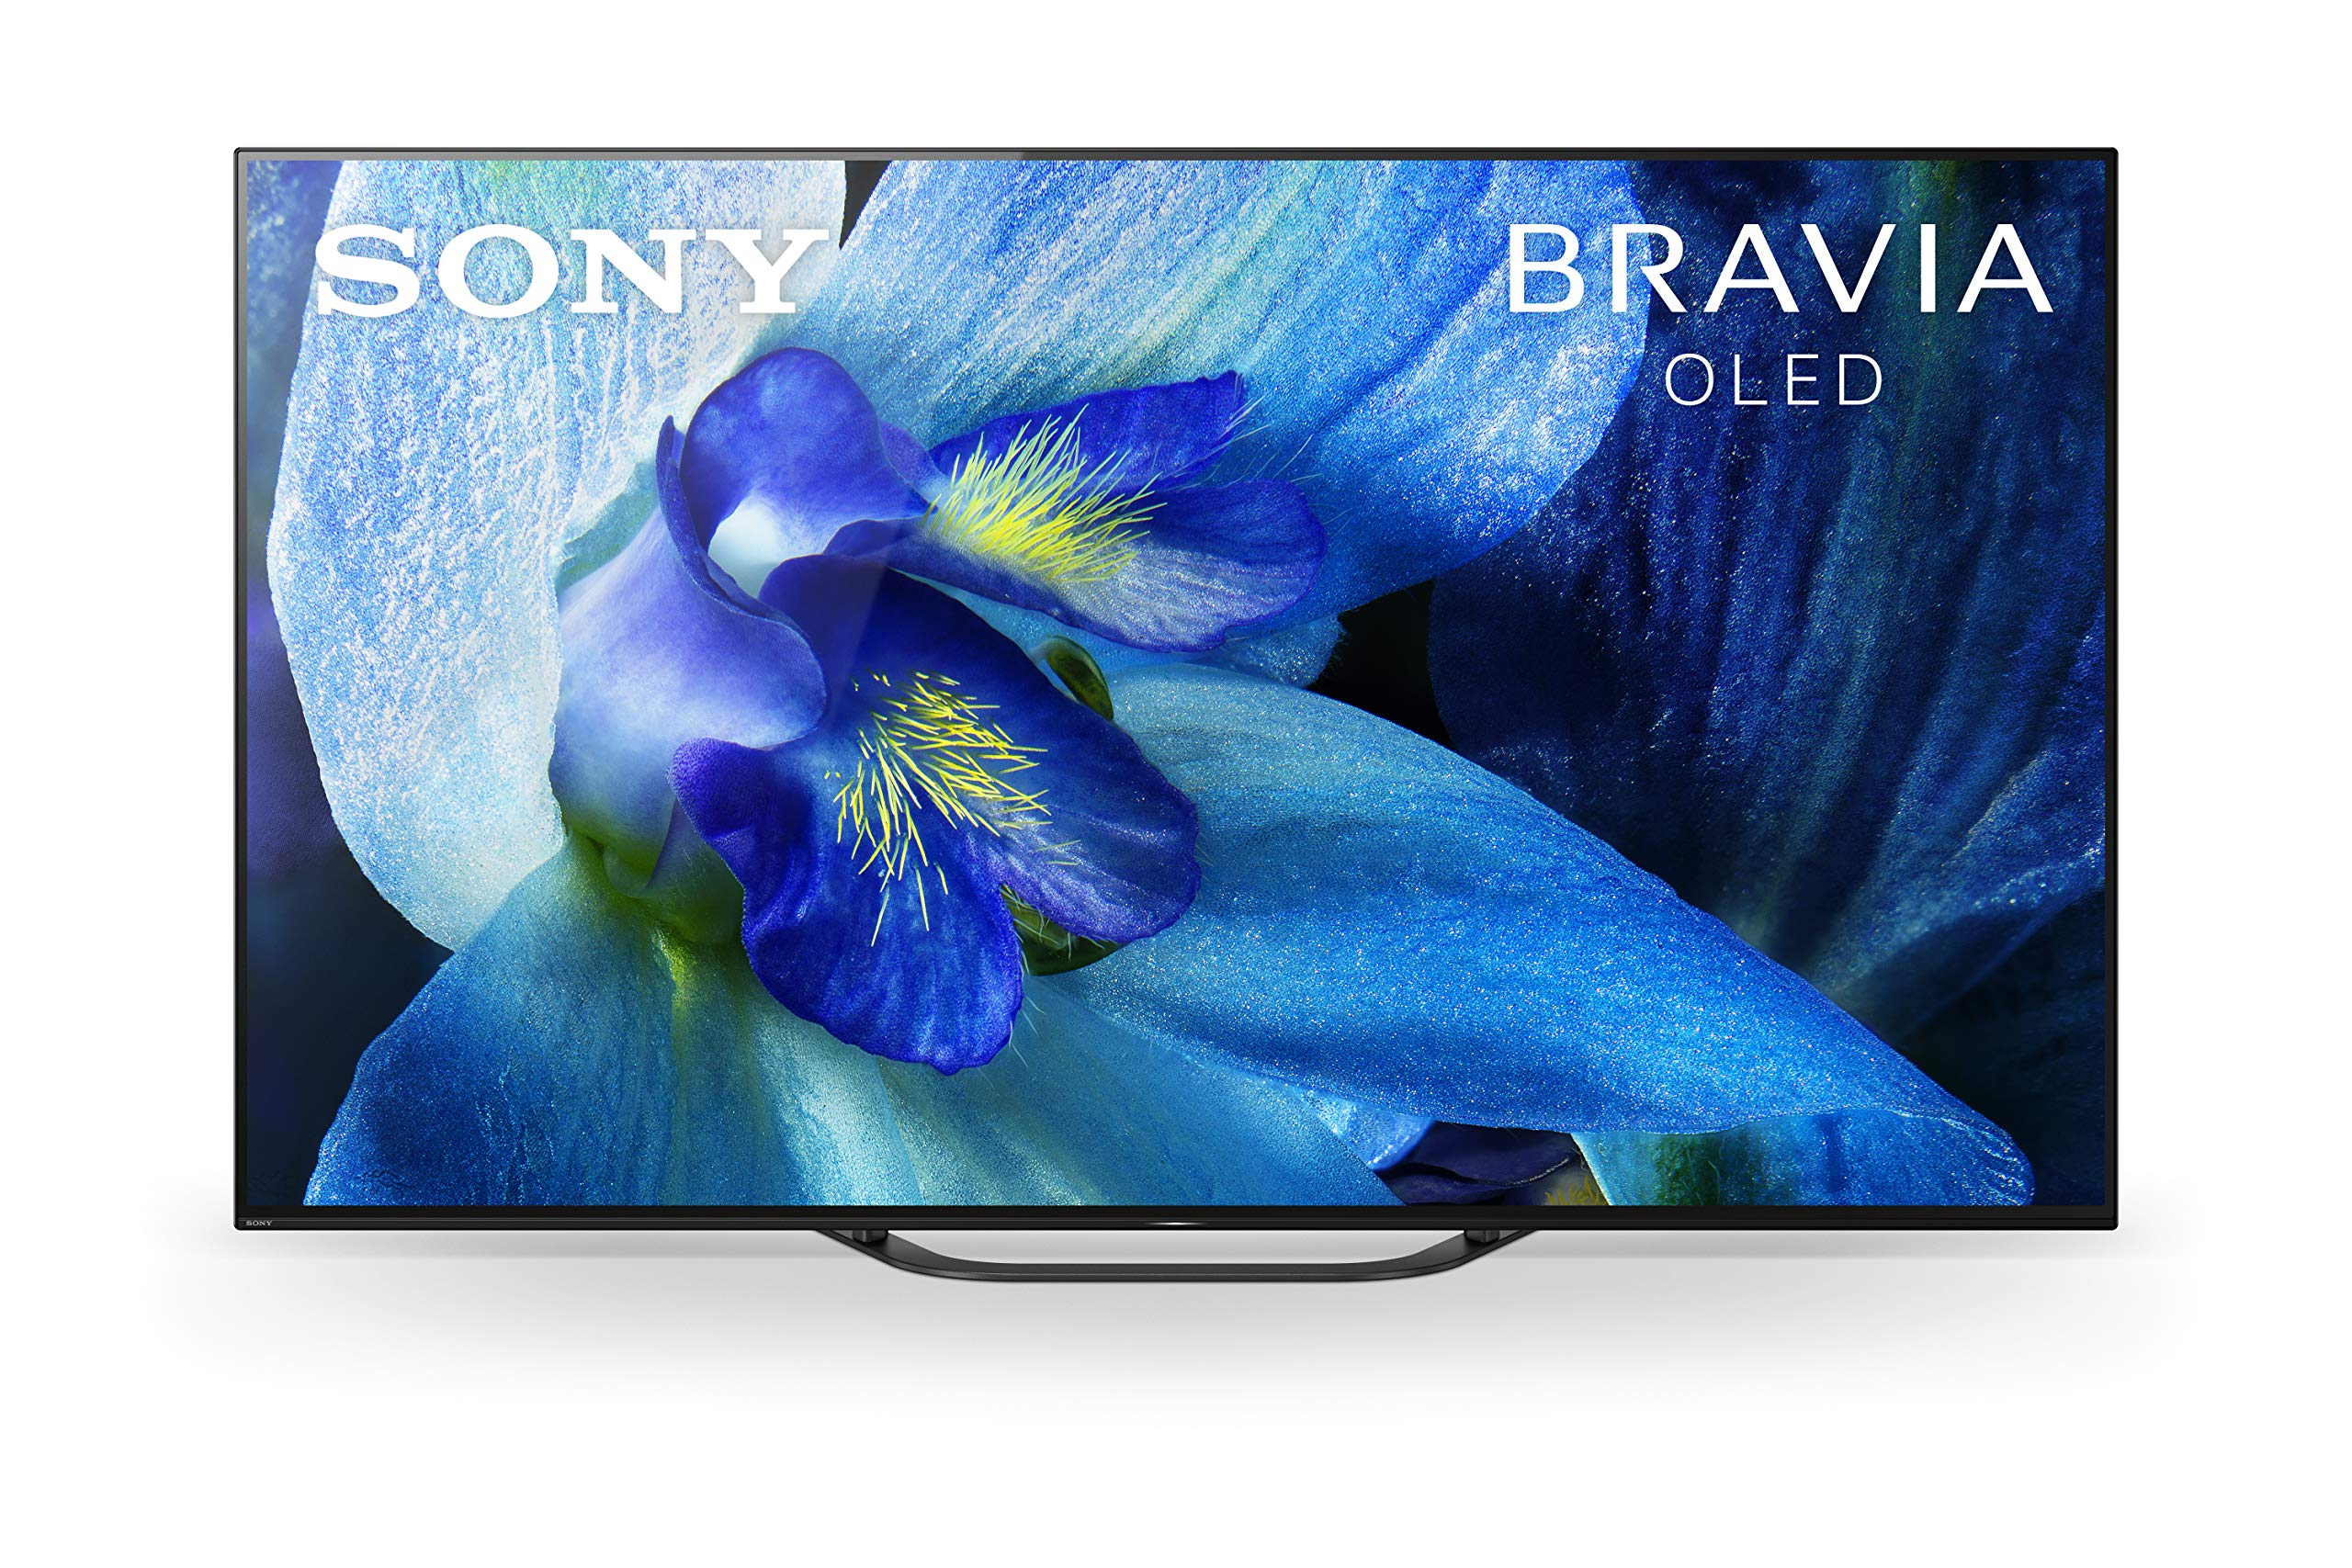 Sony XBR-A8G 4K Ultra HD Smart BRAVIA OLED TV (Modelo 2019): Amazon.es: Electrónica